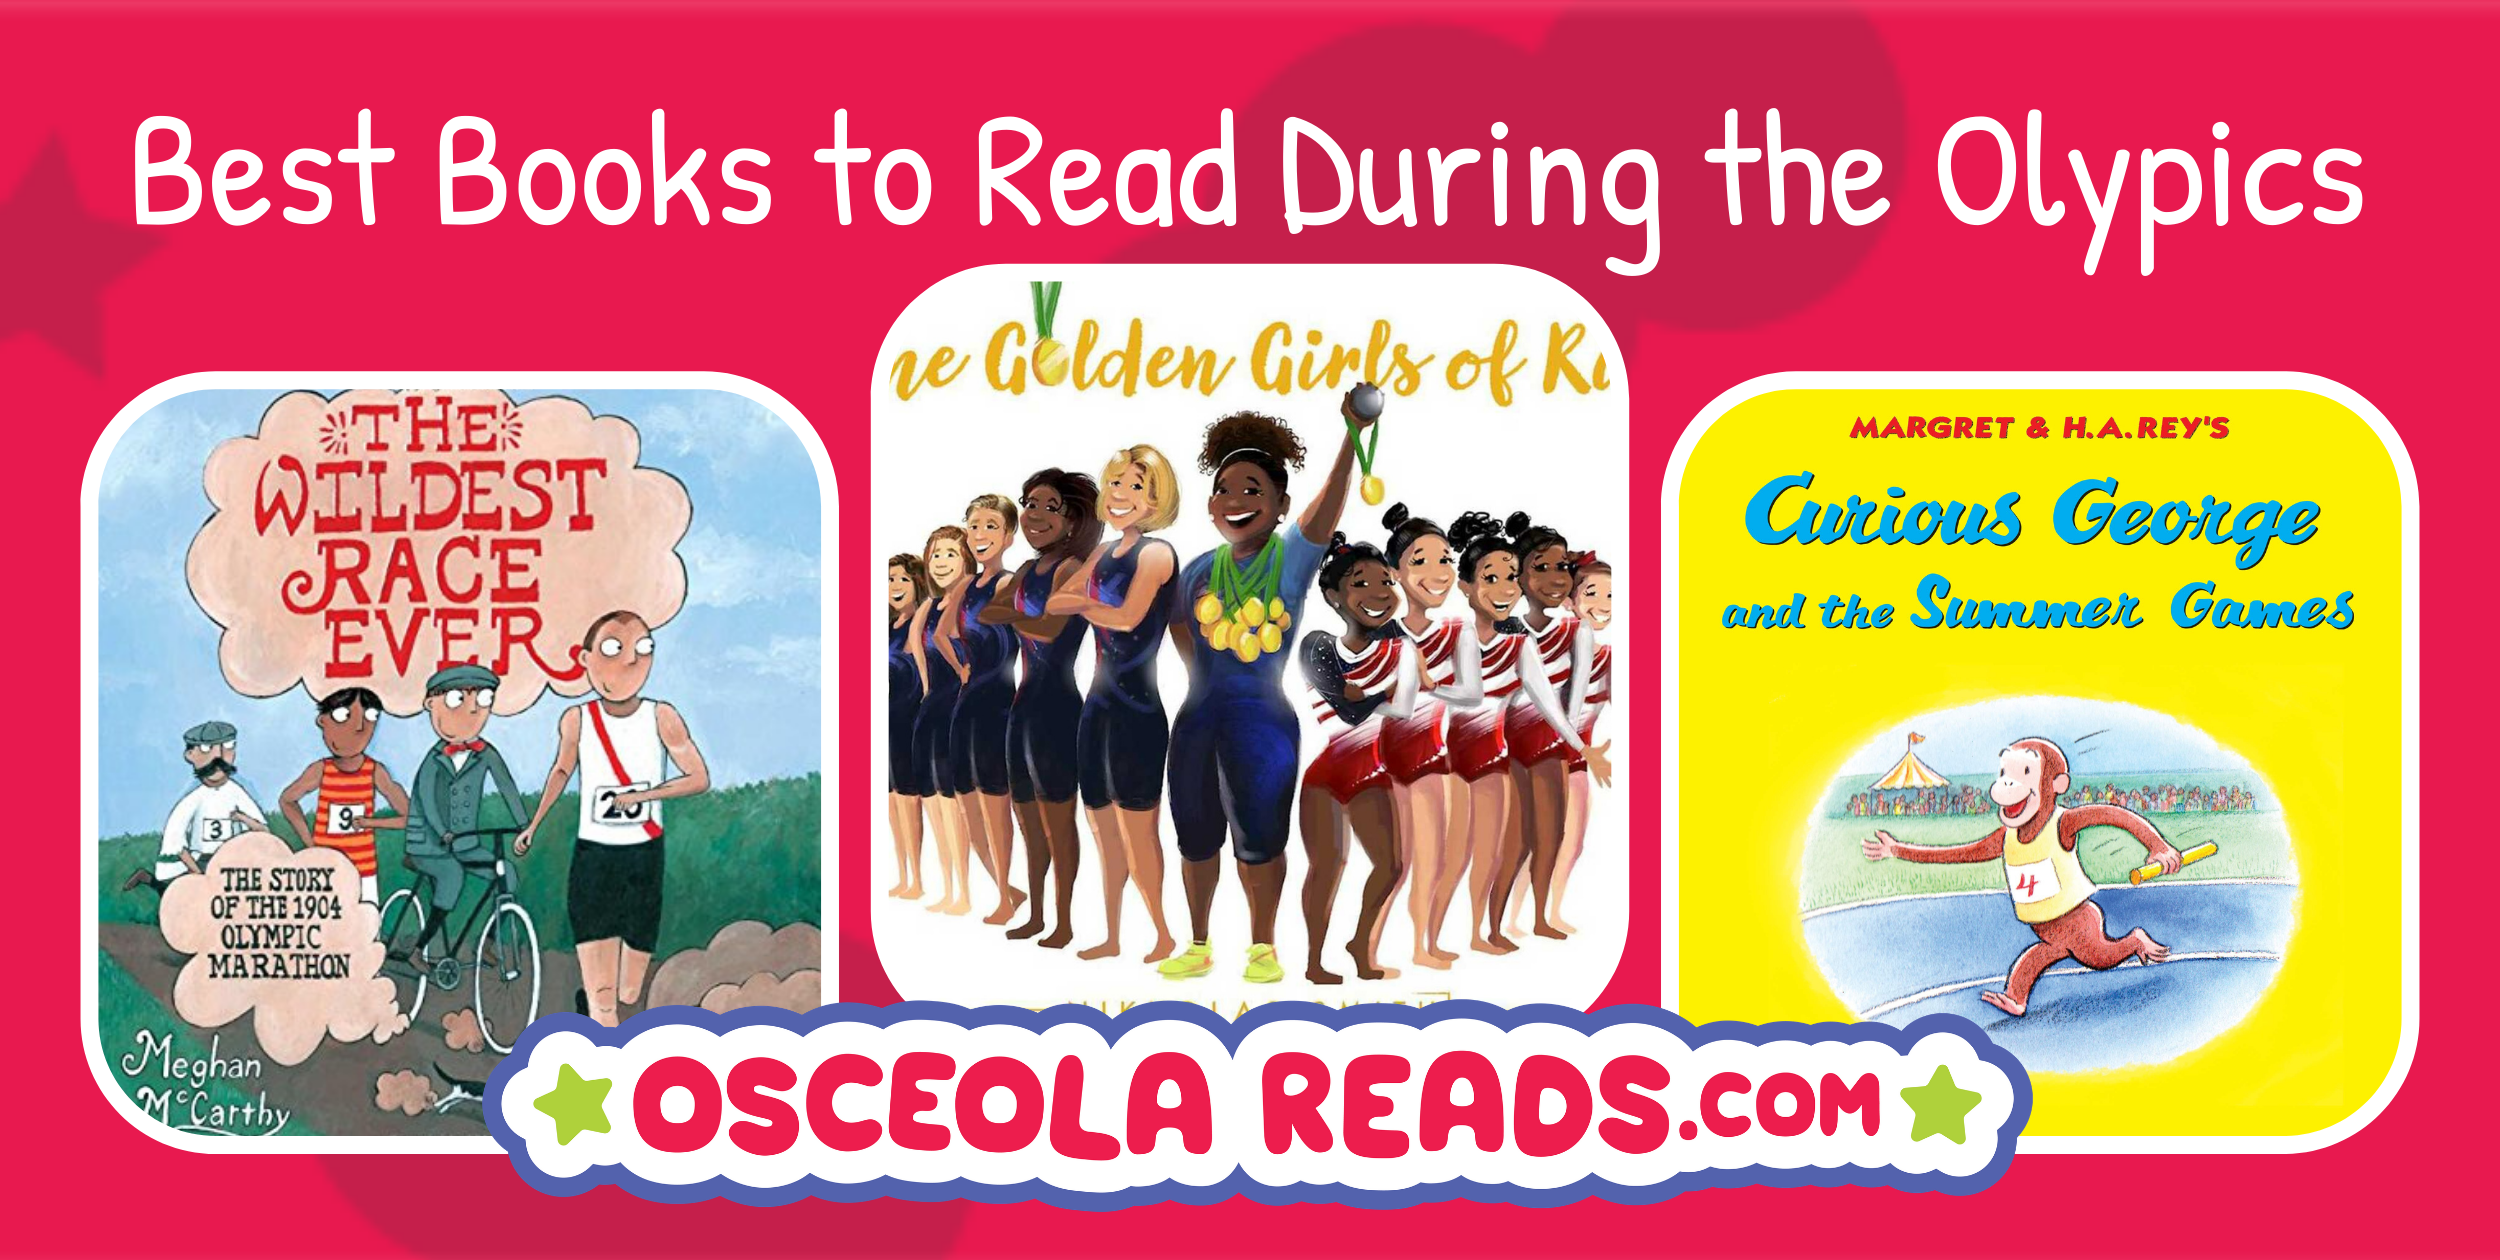 Best Books to Read During the Olympics